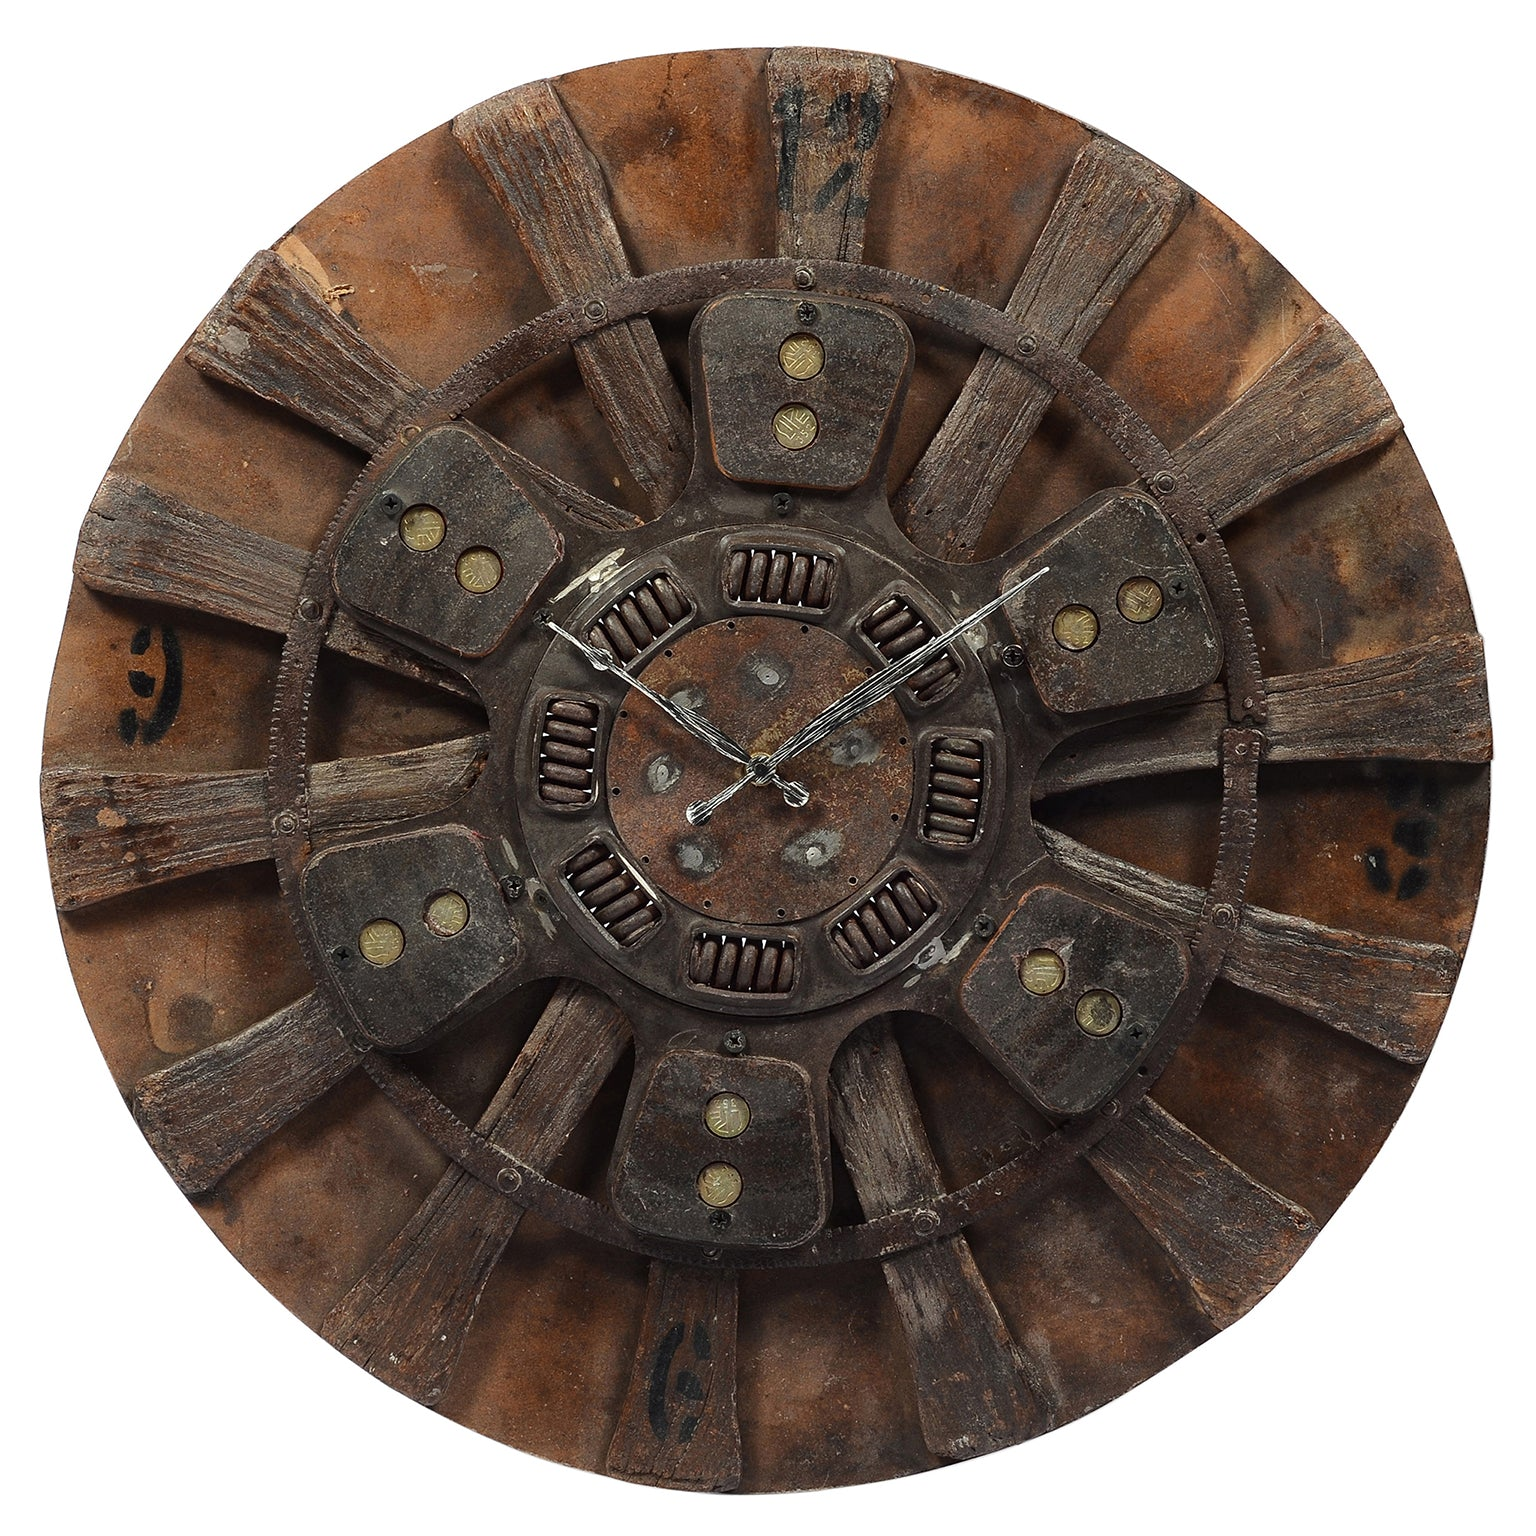 Old spinning wheel clock with clutch plate